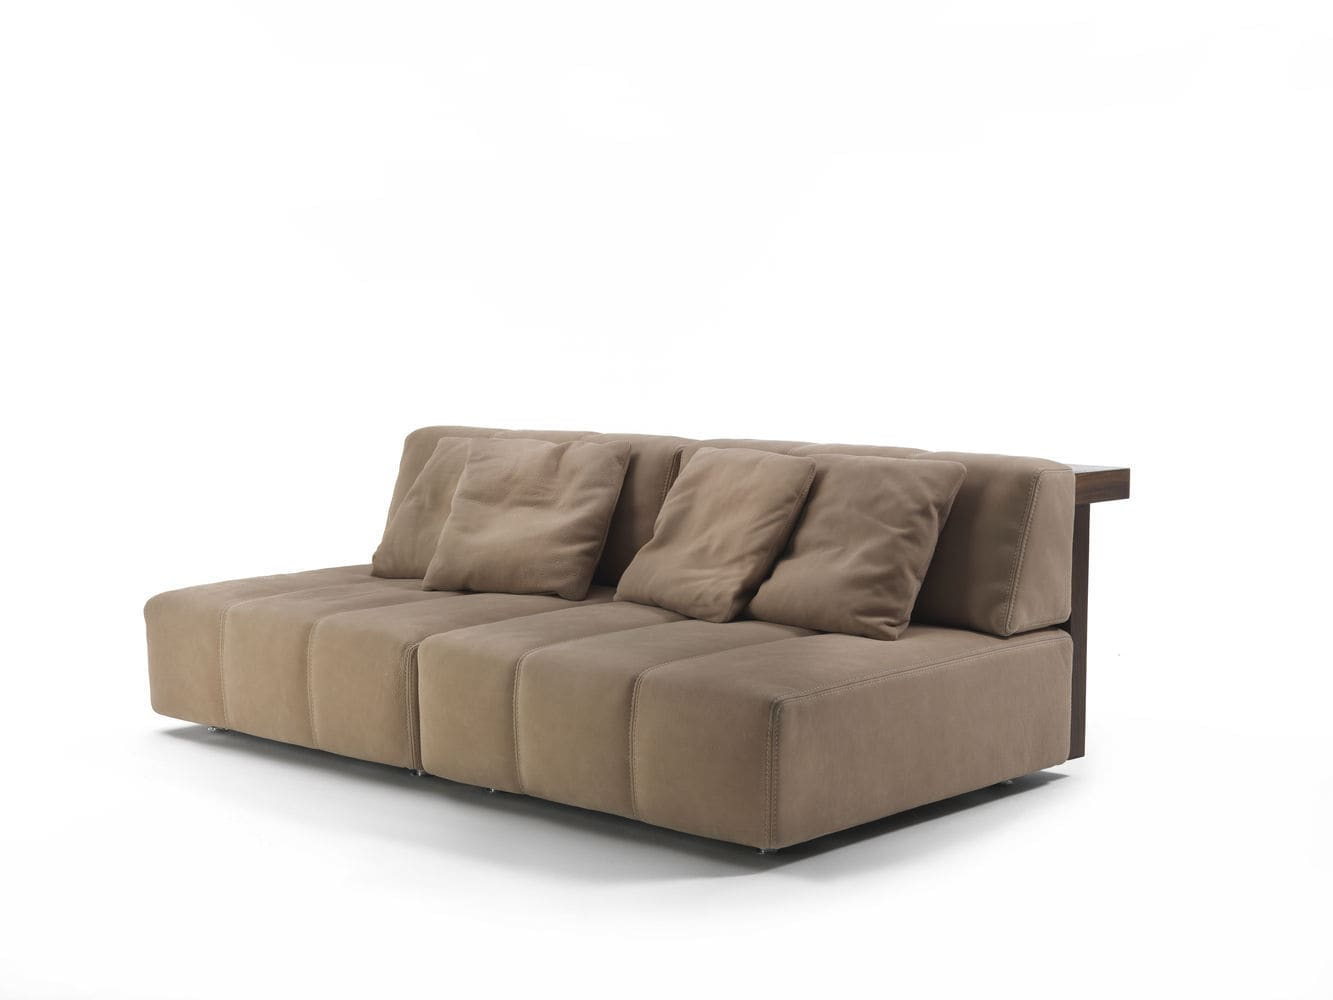 ... Modular Sofa / Contemporary / Leather / 3 Seater FUR NATURE By Jamie  Durie Riva ...